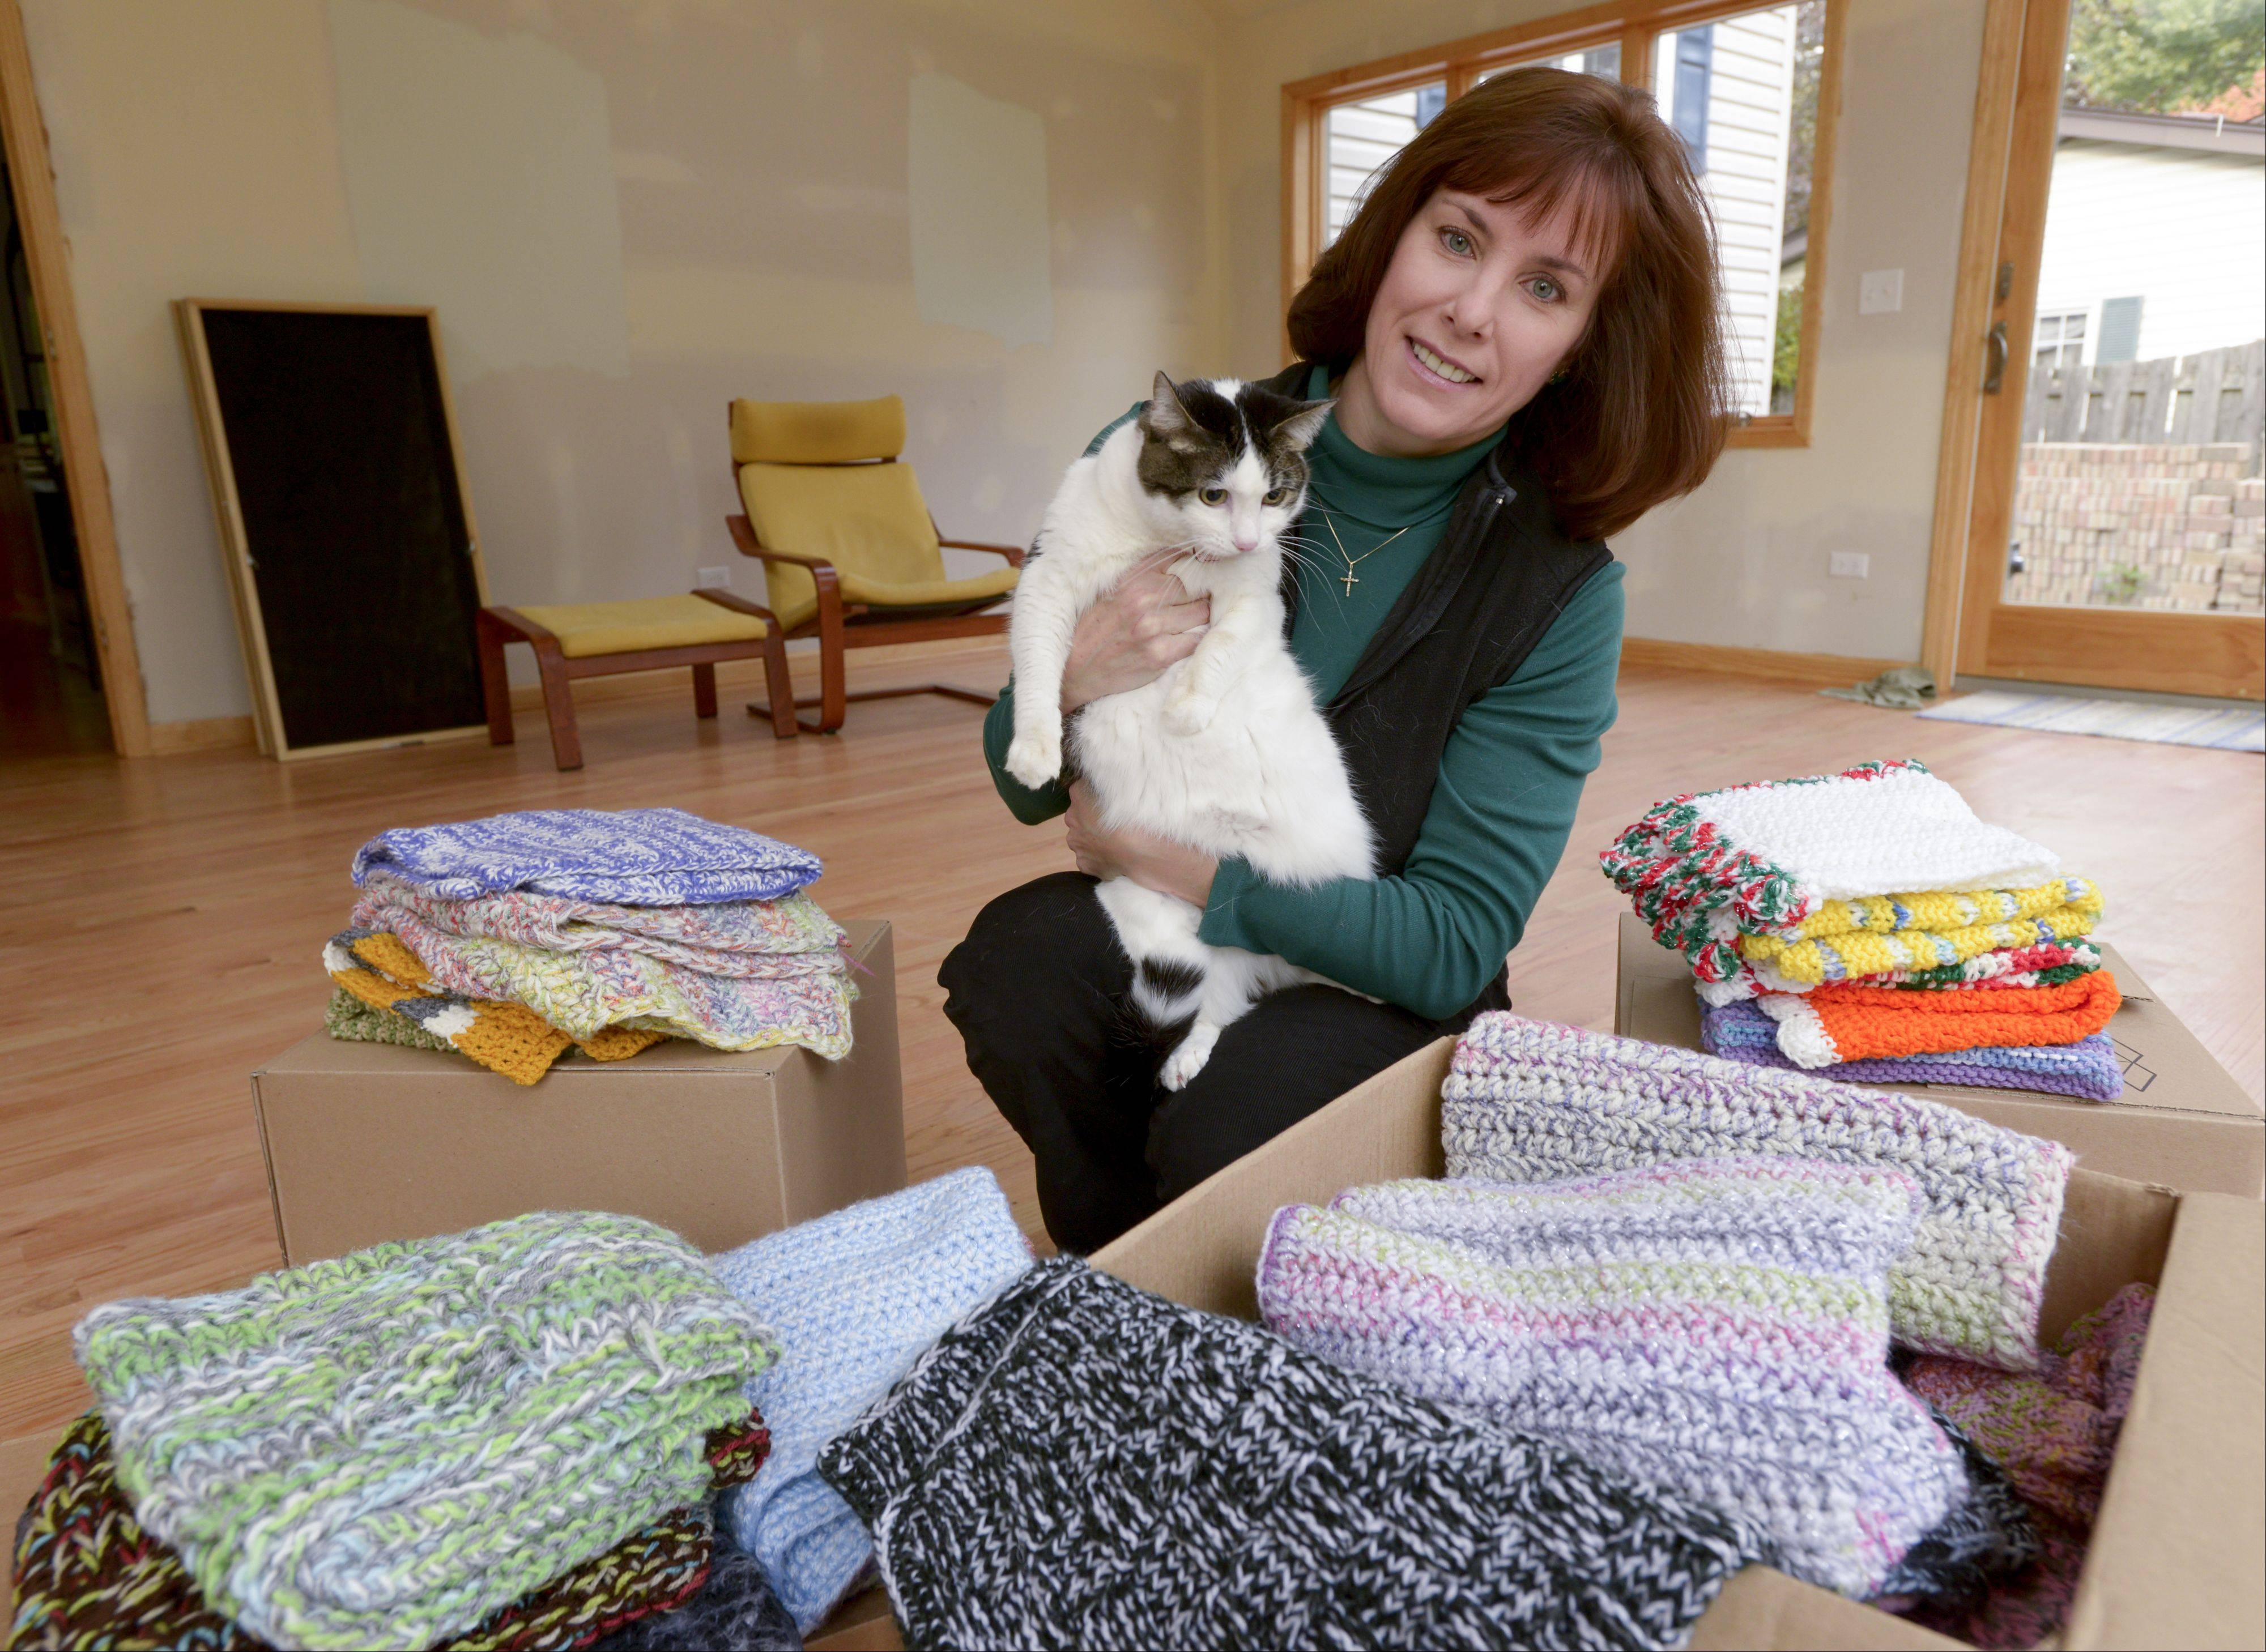 Linda Kozlowski holds Anna, the cat she adopted from DuPage Animal Control in 2007. Wanting to do something for the animals she couldn't take home, Kozlowski started crocheting blankets and started Comfort for Critters to provide handmade blankets for shelter animals.